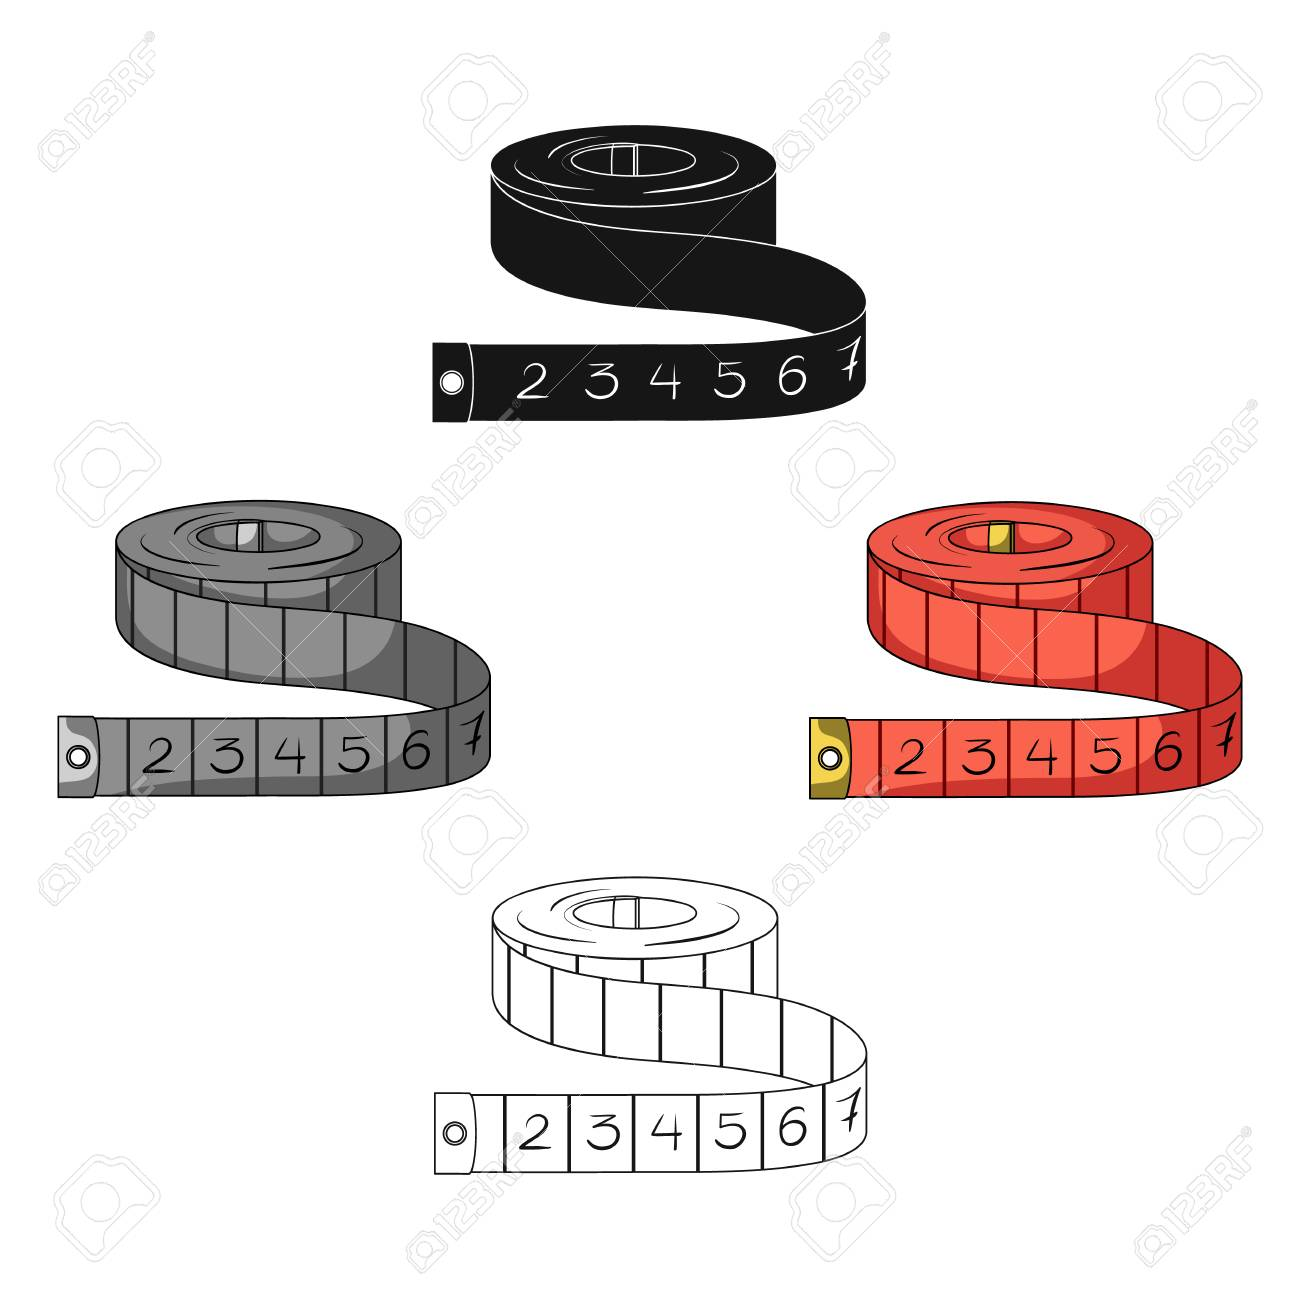 Red Roulette Seamstresses.Sewing or tailoring tools kit single icon in cartoon,black style vector symbol stock illustration. - 125099154